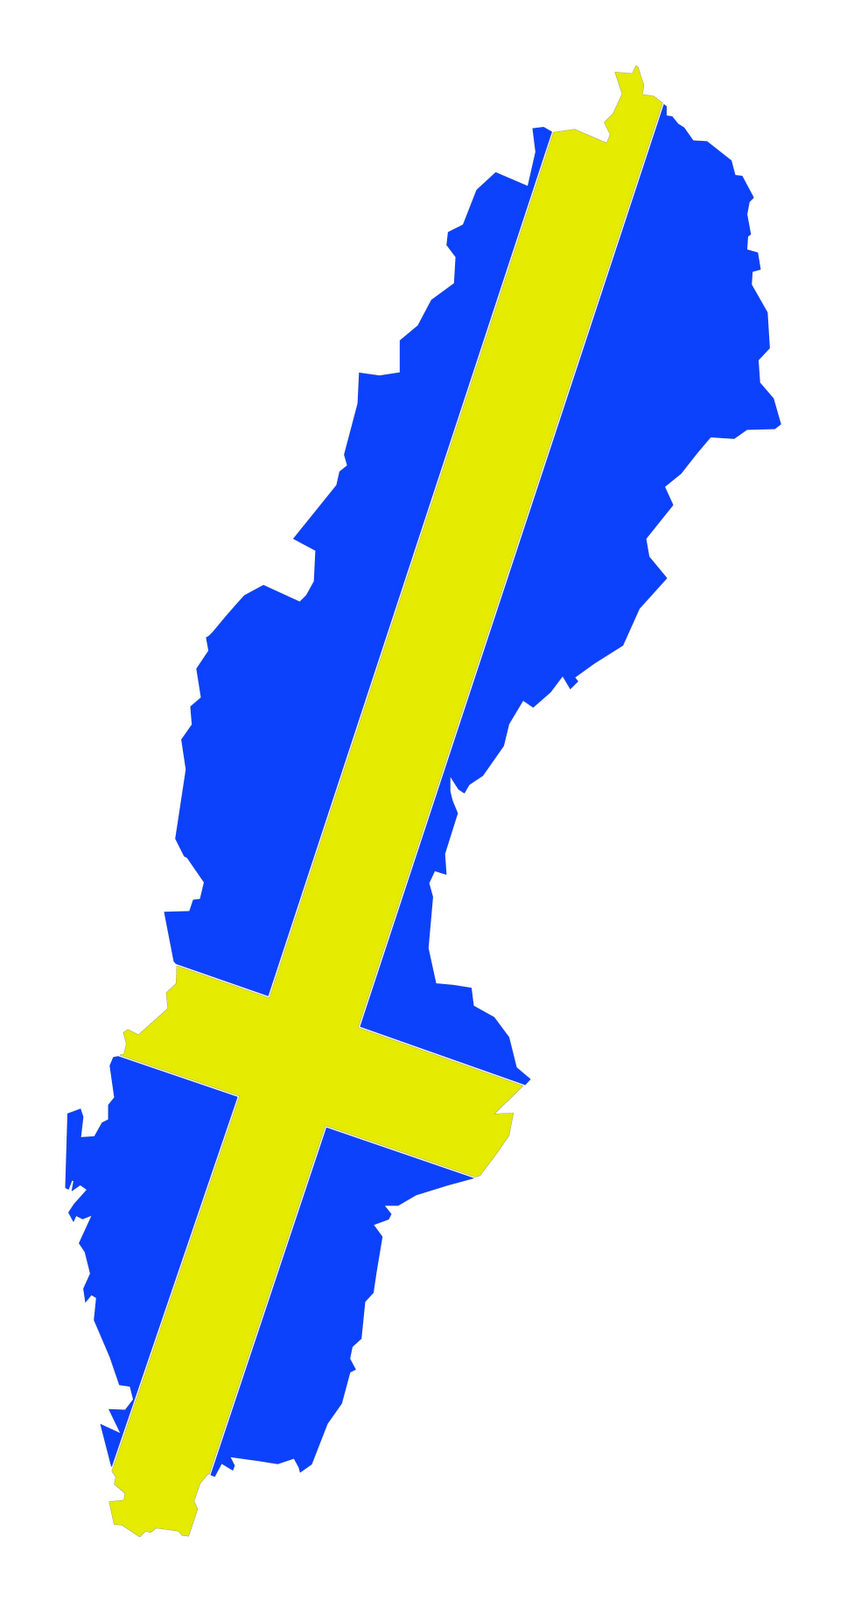 Sweden Flag Pict...M Alphabet Wallpaper